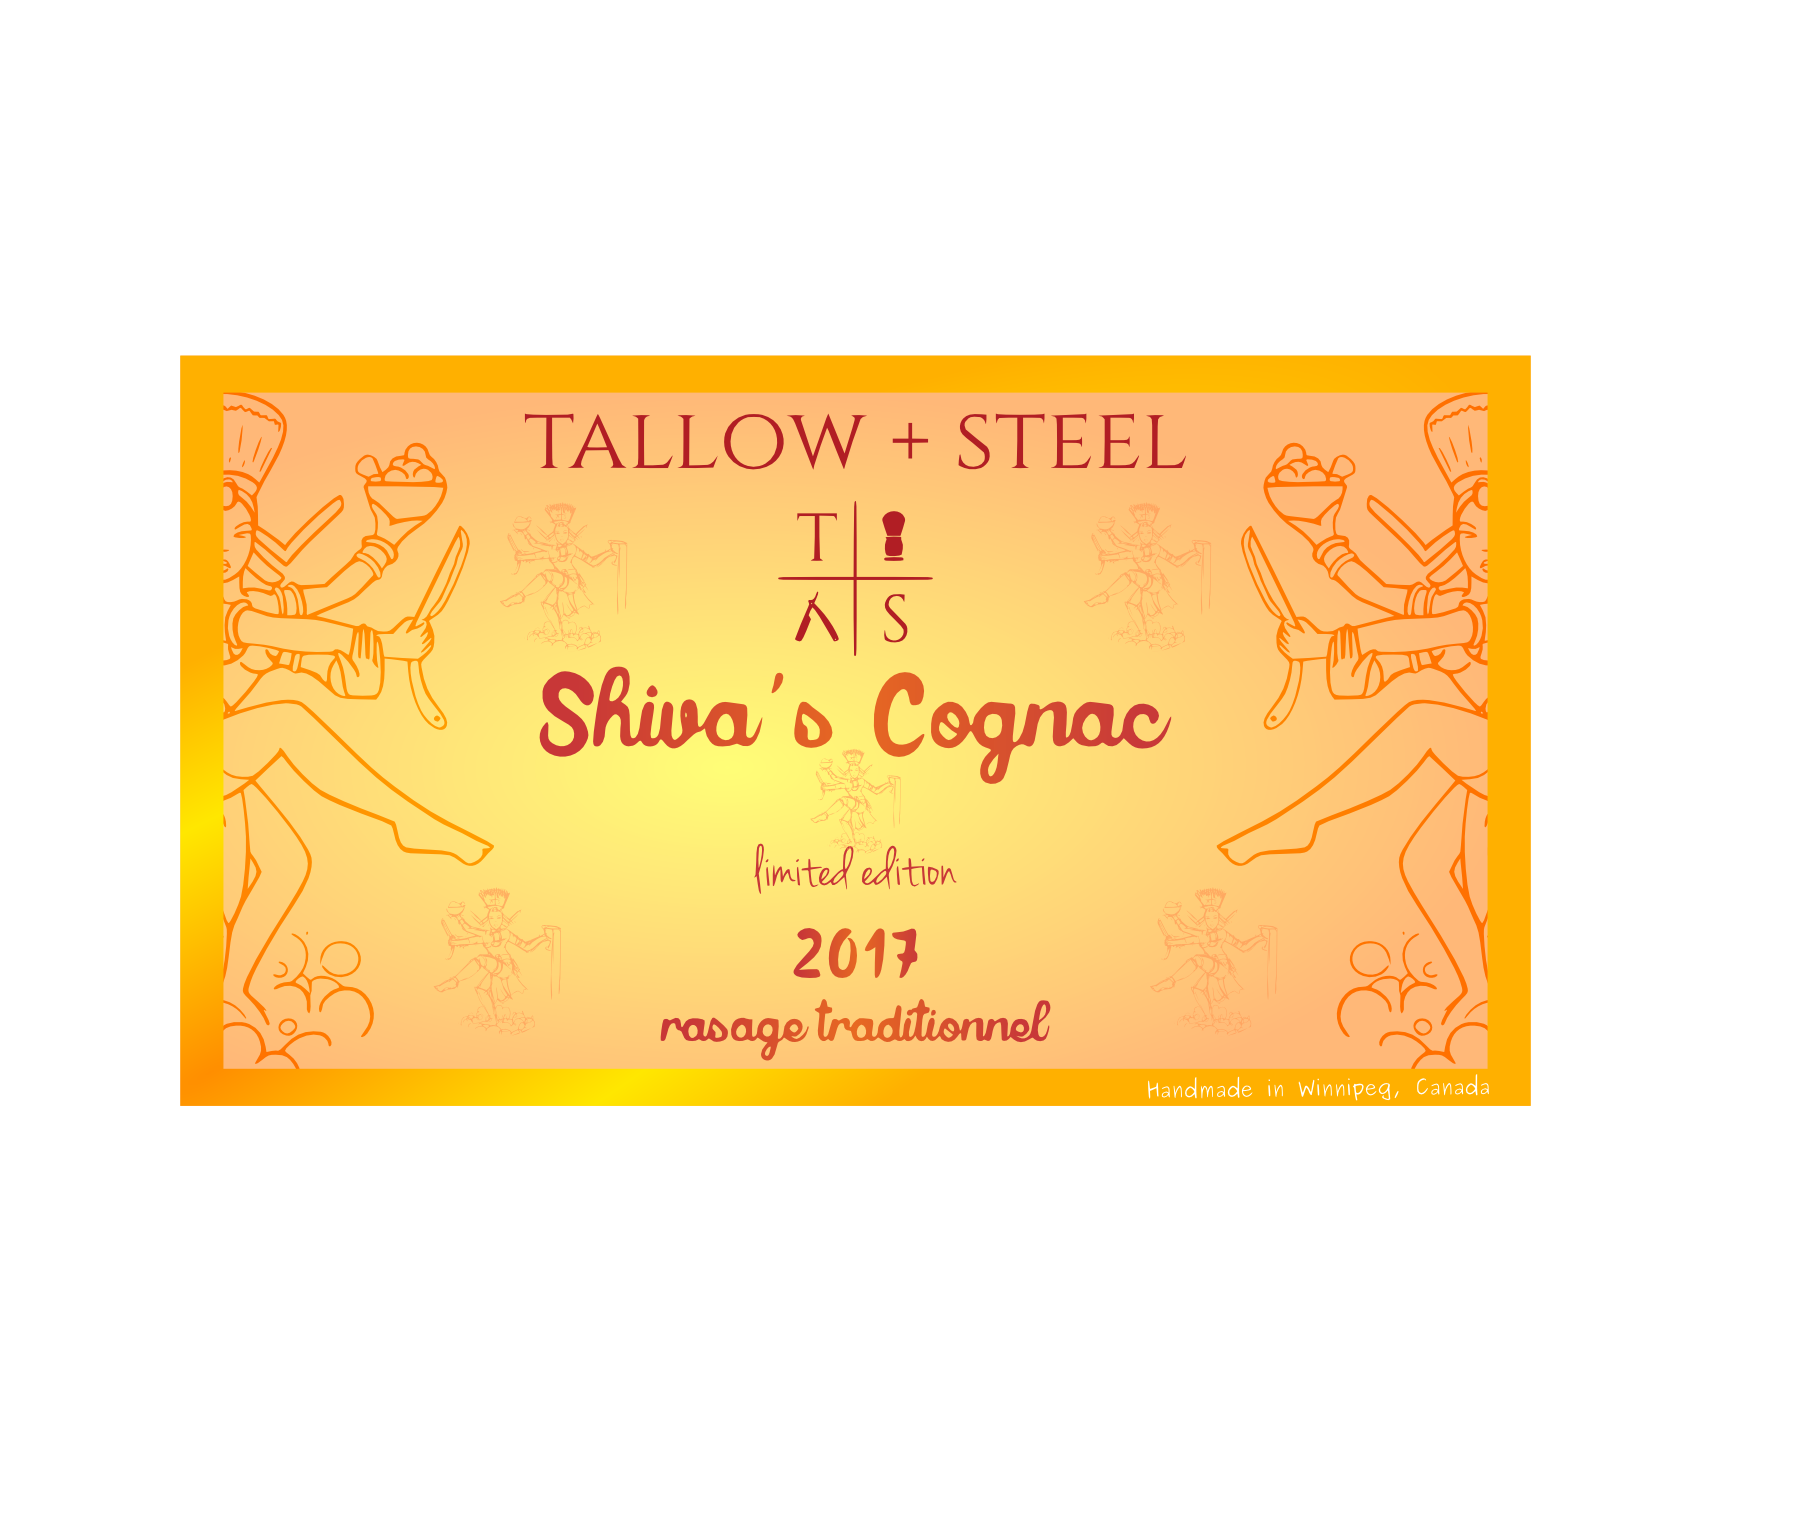 Tallow + Steel - Shiva's Cognac - Aftershave (Alcohol Free) image